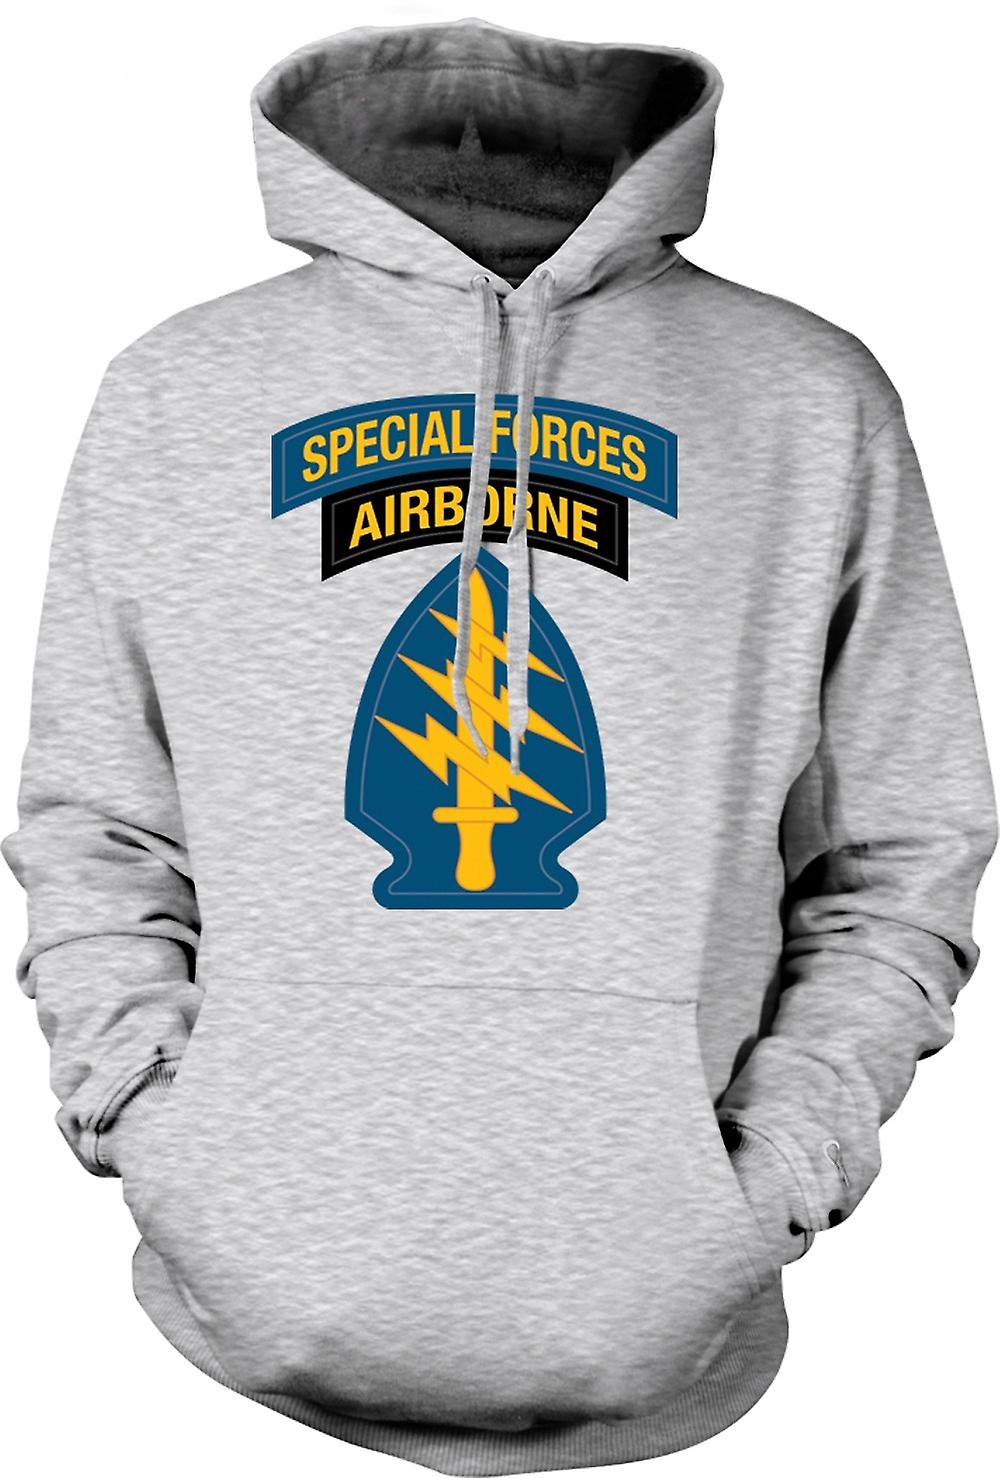 Mens Hoodie - Green Beret Special Forces